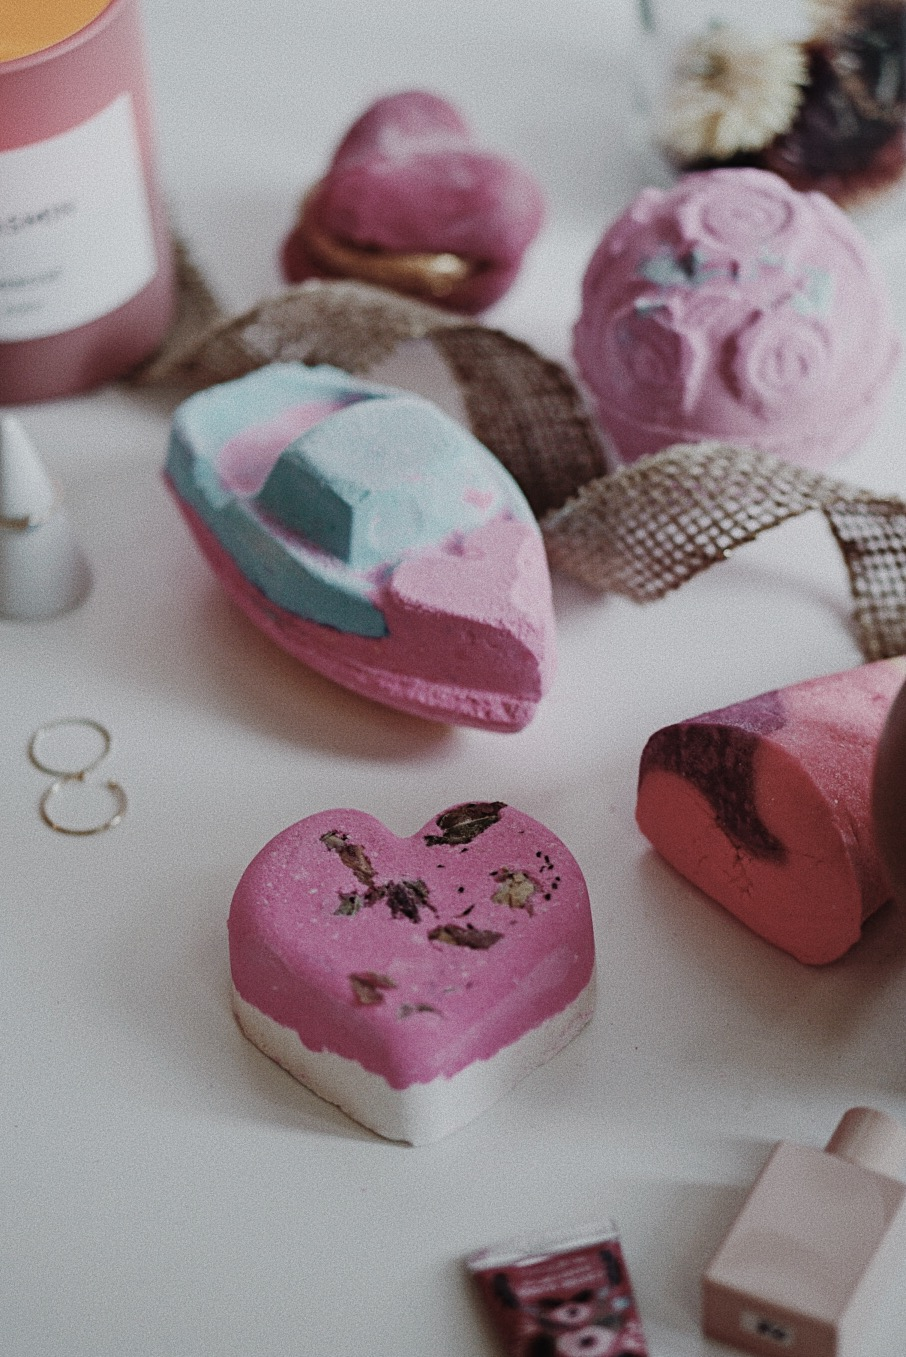 Lush Valentine's Day 2018 Love Hearts Set